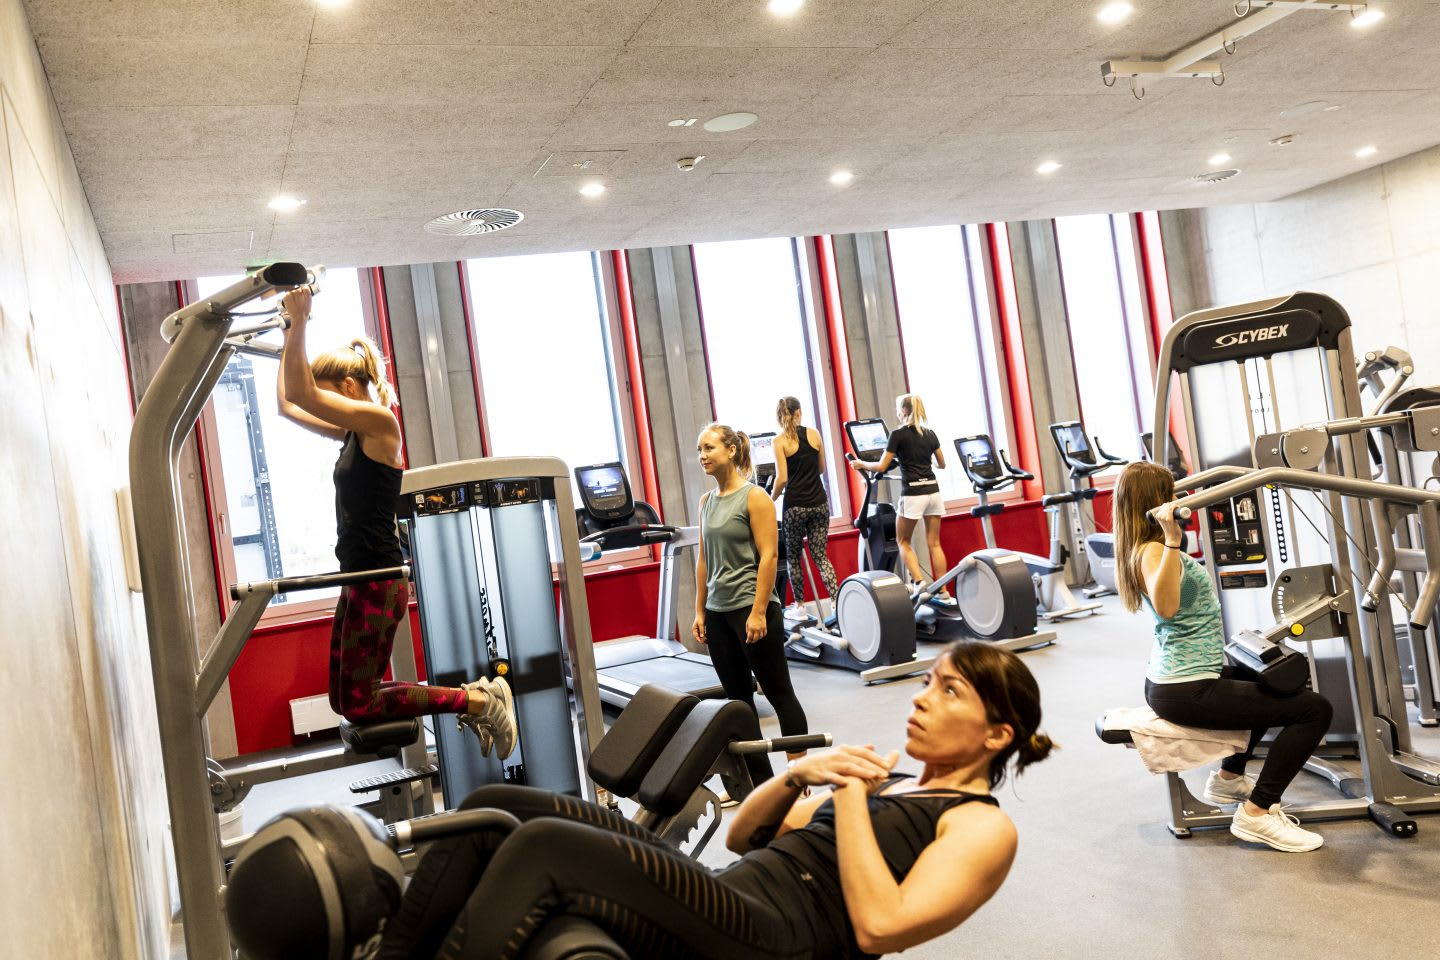 Women using sports equipment while working out at a gym, GYM, Herzogenaurach, adidas, employees, workplace, fitness. sports, culture, active, health, lifestyle